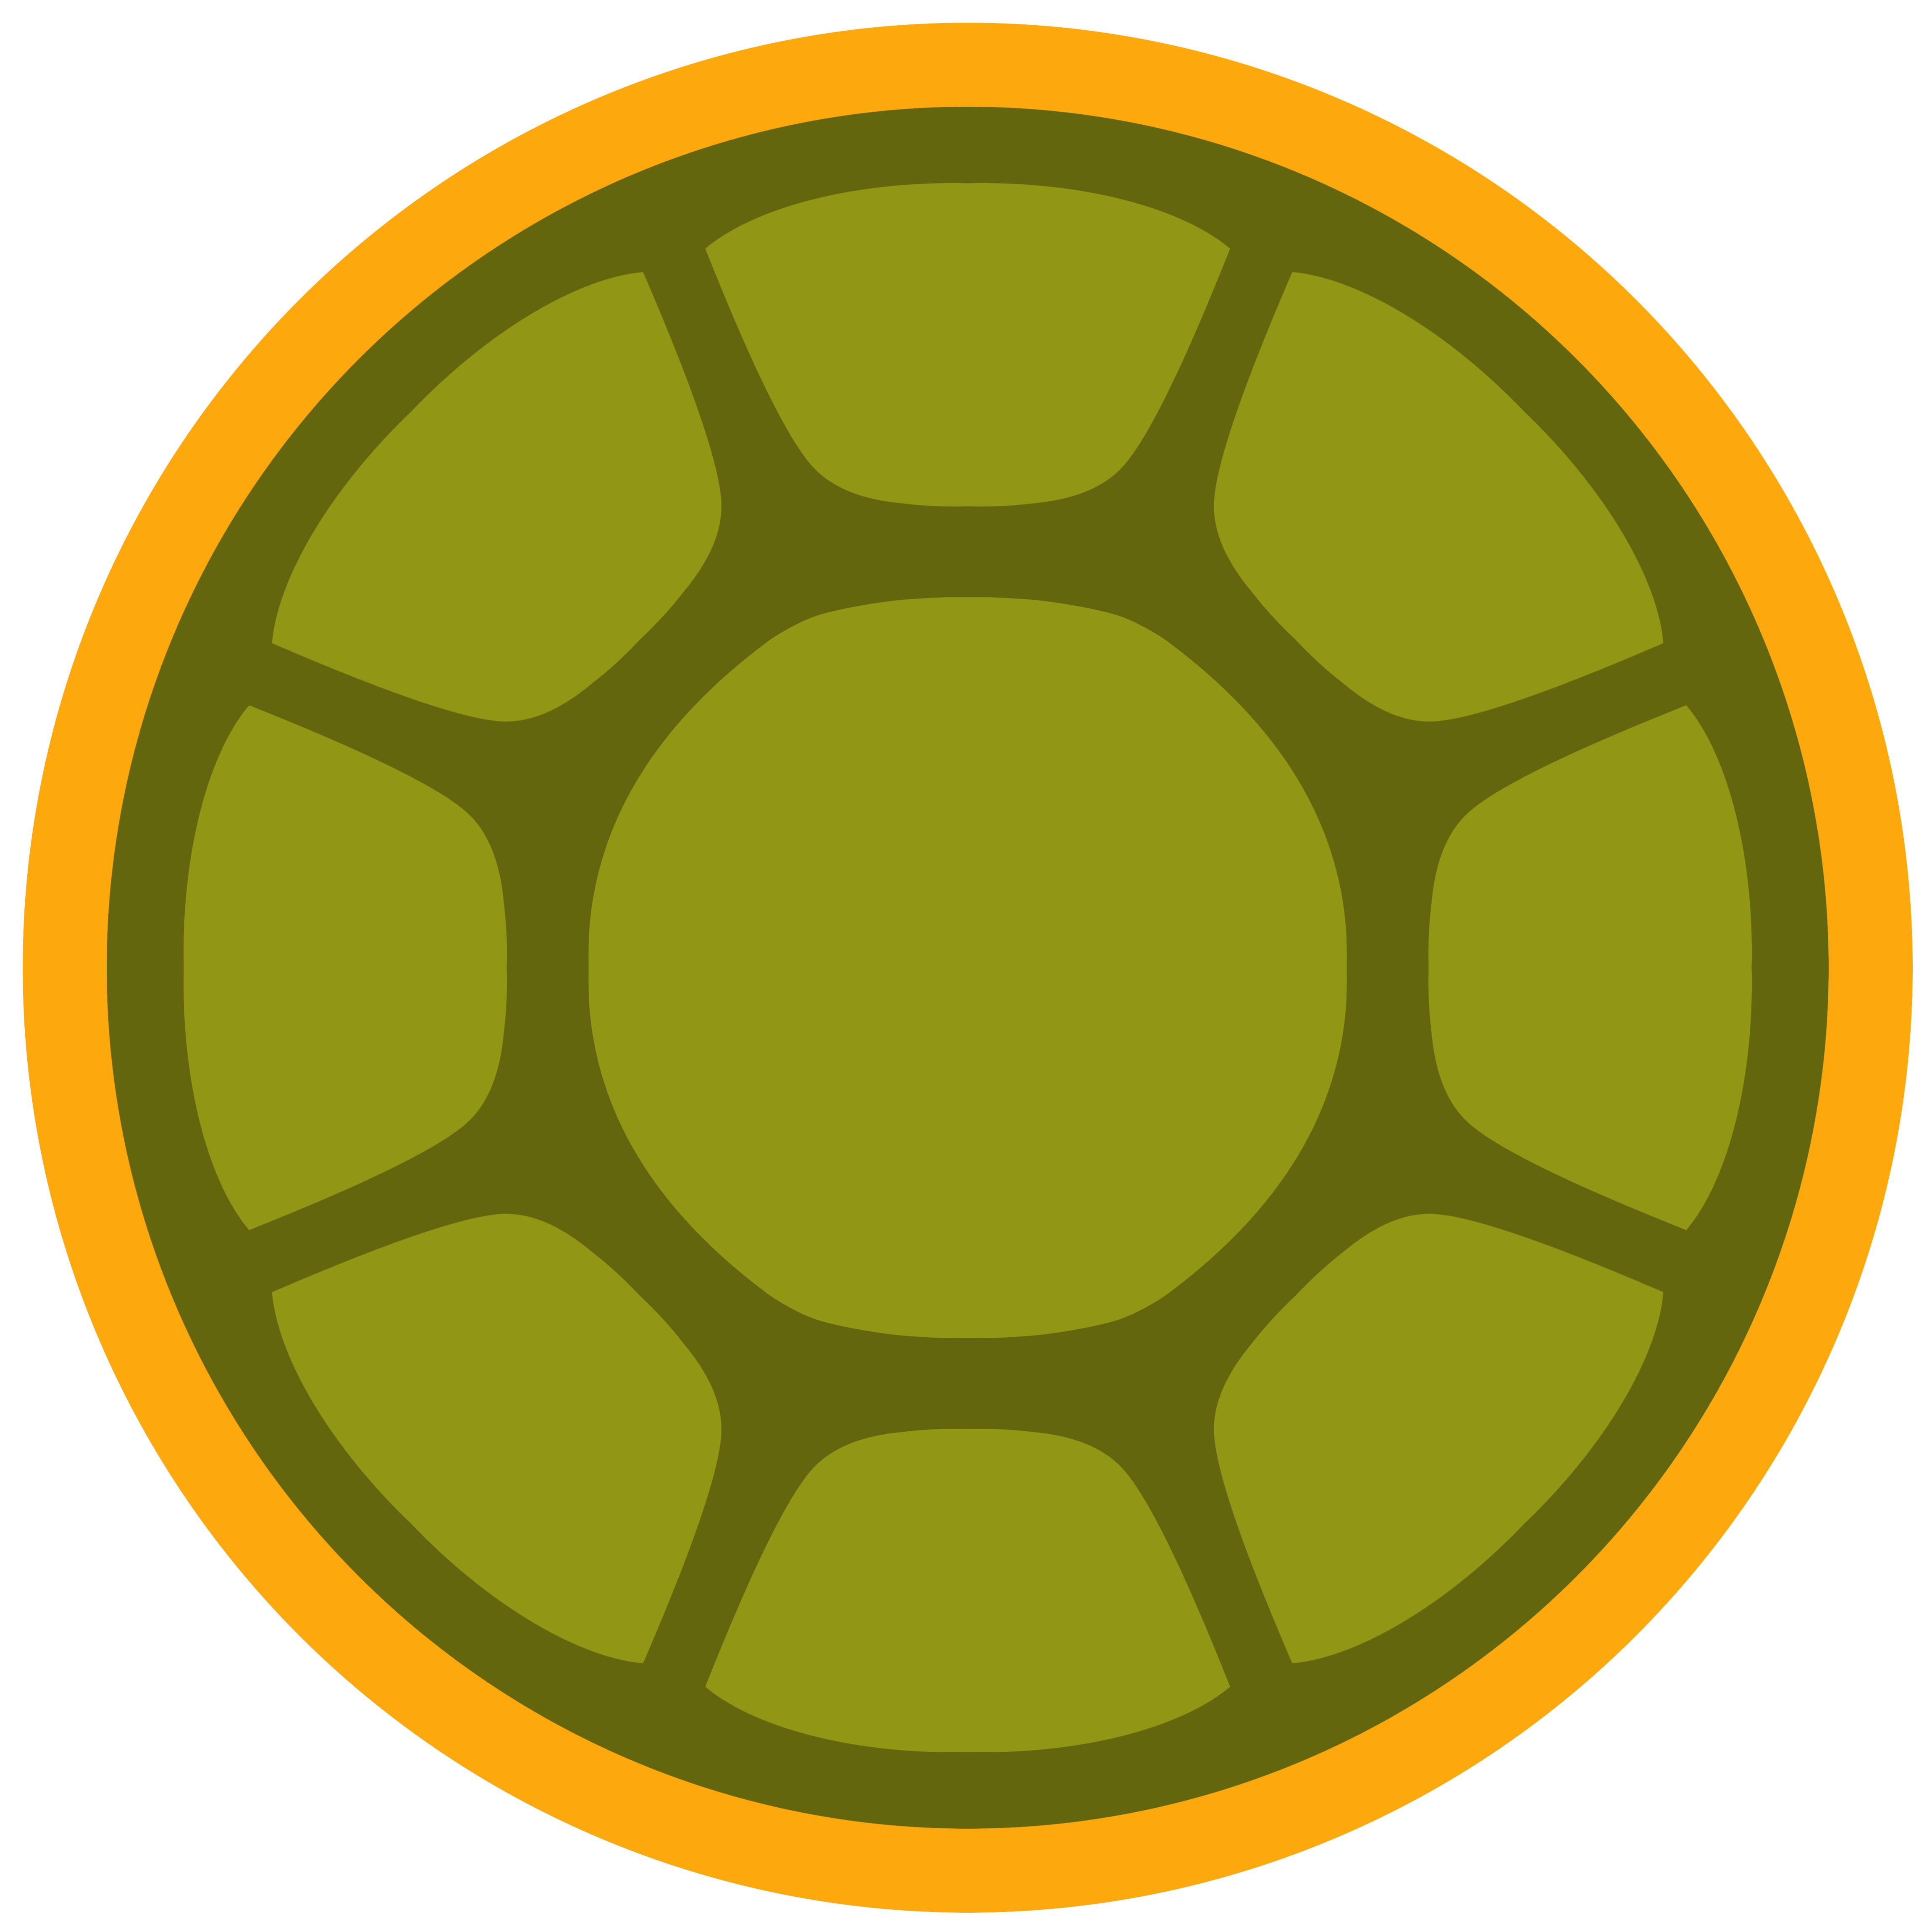 Turtle Cartoon Drawing Turtle Png Image And Clipart Marine Turtle Sea Turtle Shell Green Sea Turtle